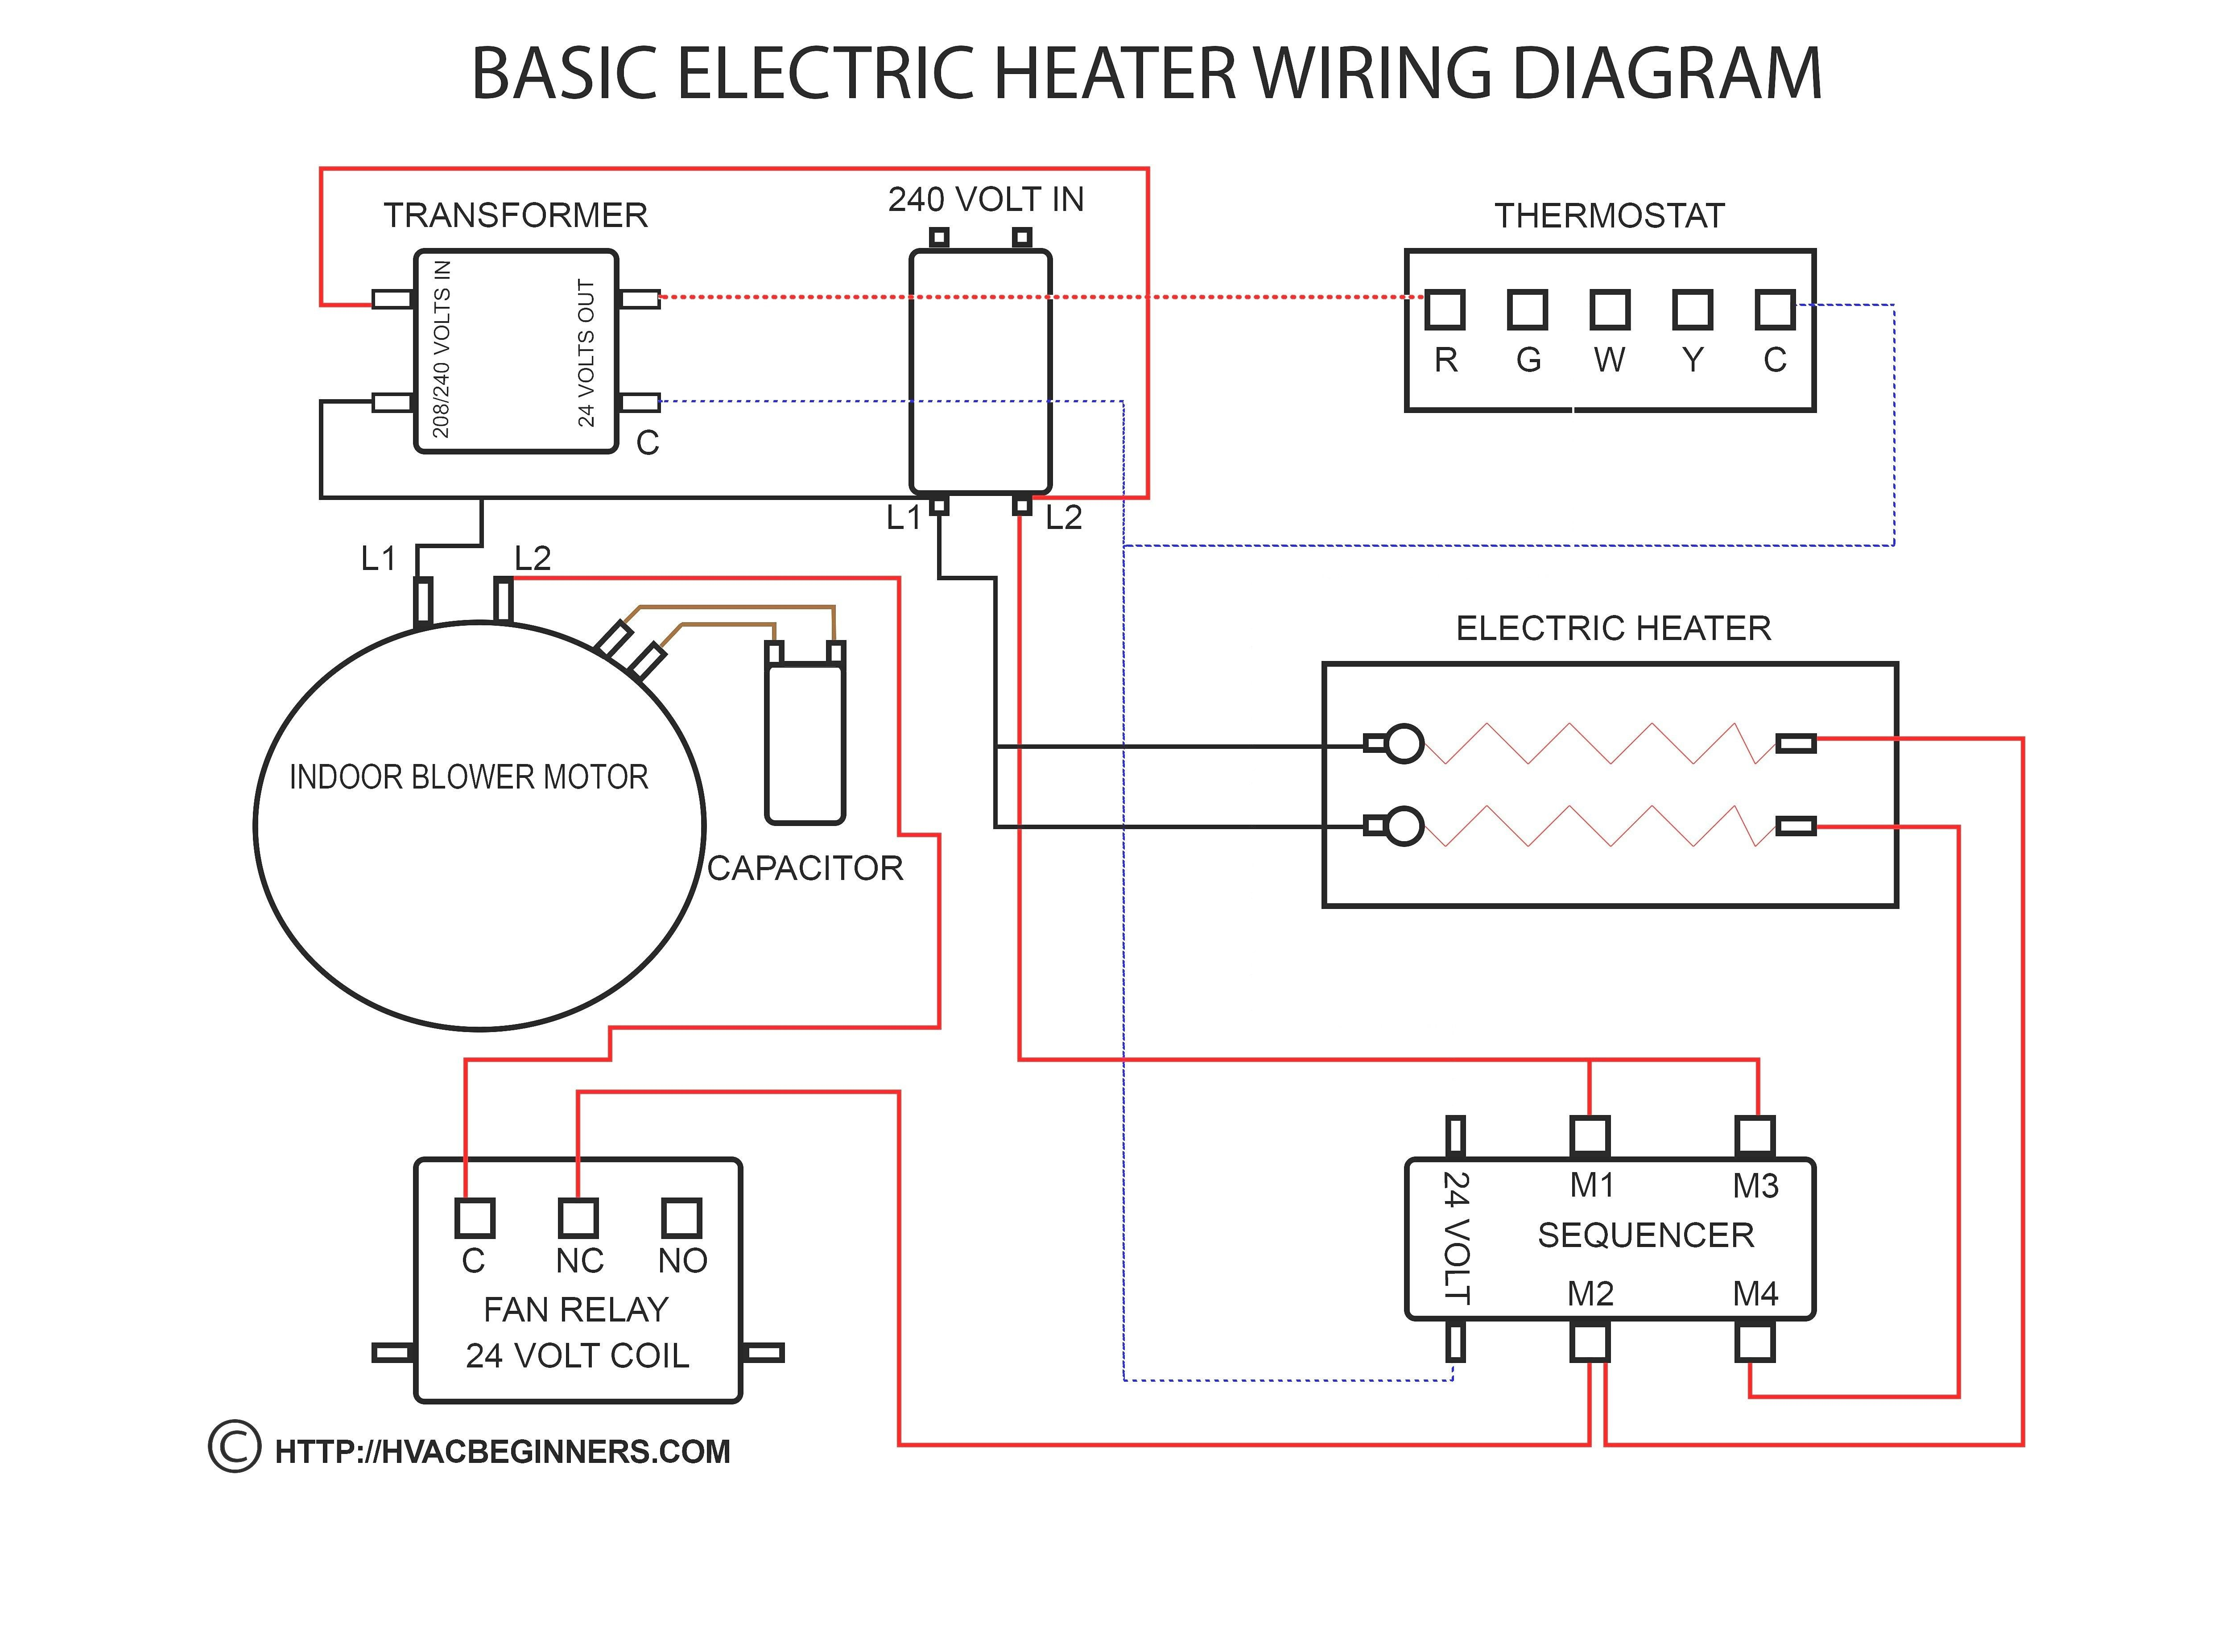 Unique Simple Electrical Circuit Diagram Diagram Wiringdiagram Diagramming Diagramm Electrical Circuit Diagram Basic Electrical Wiring Electrical Diagram